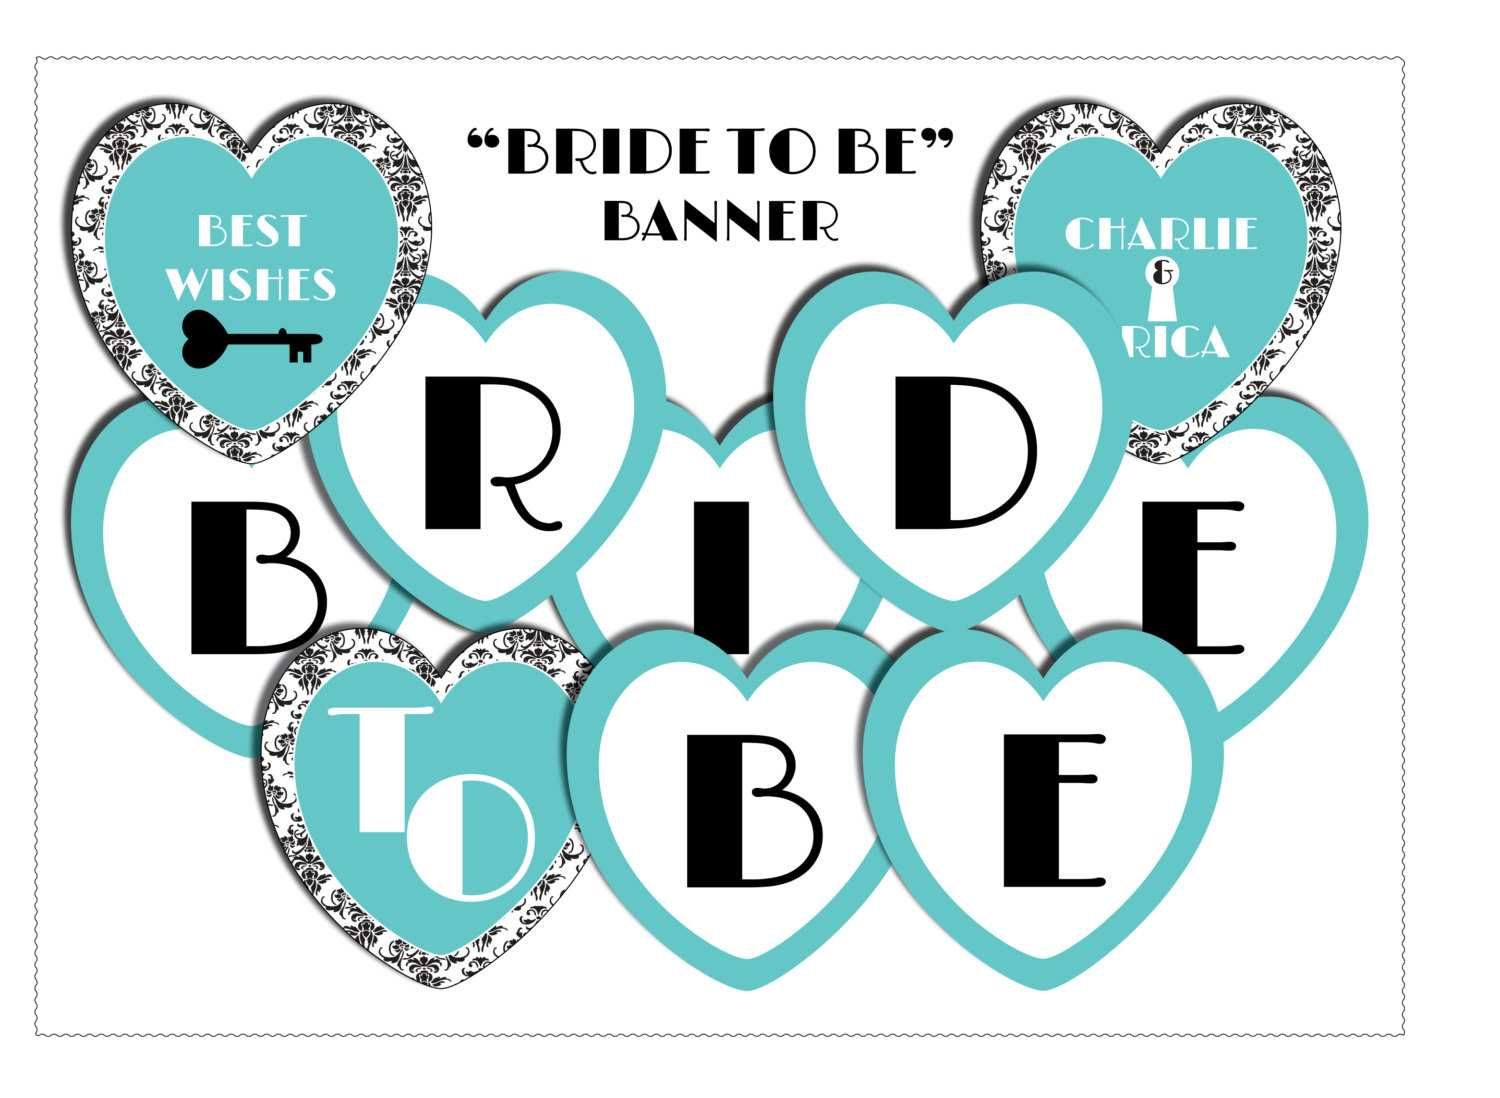 11 Best Photos Of Bride To Be Banner Template - Diy Bridal Regarding Free Bridal Shower Banner Template